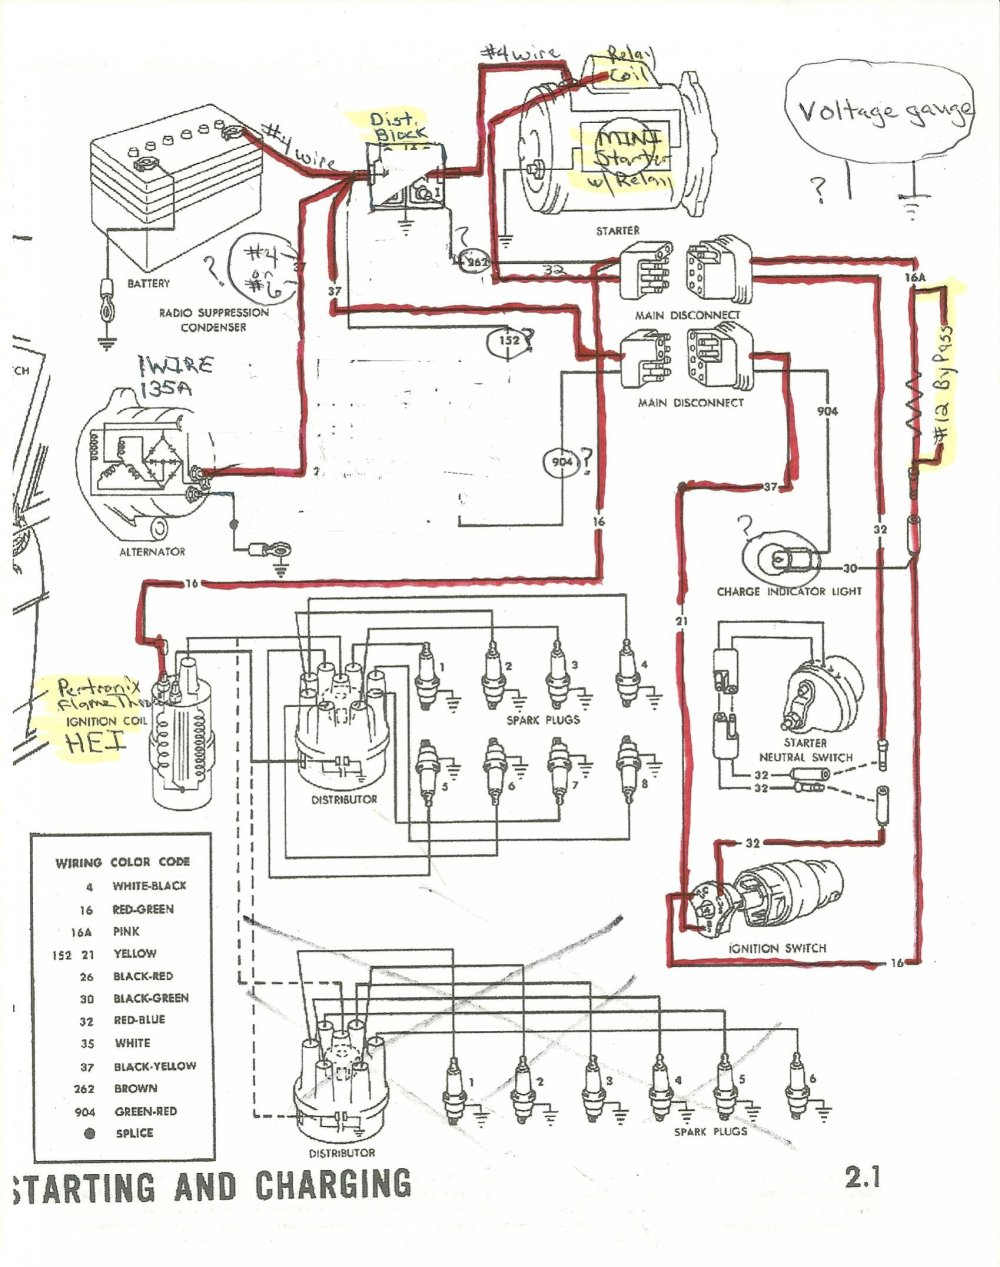 medium resolution of dodge voltage regulator wiring diagram wiring library 1965 alternator starter and distributor wiring ford mustang